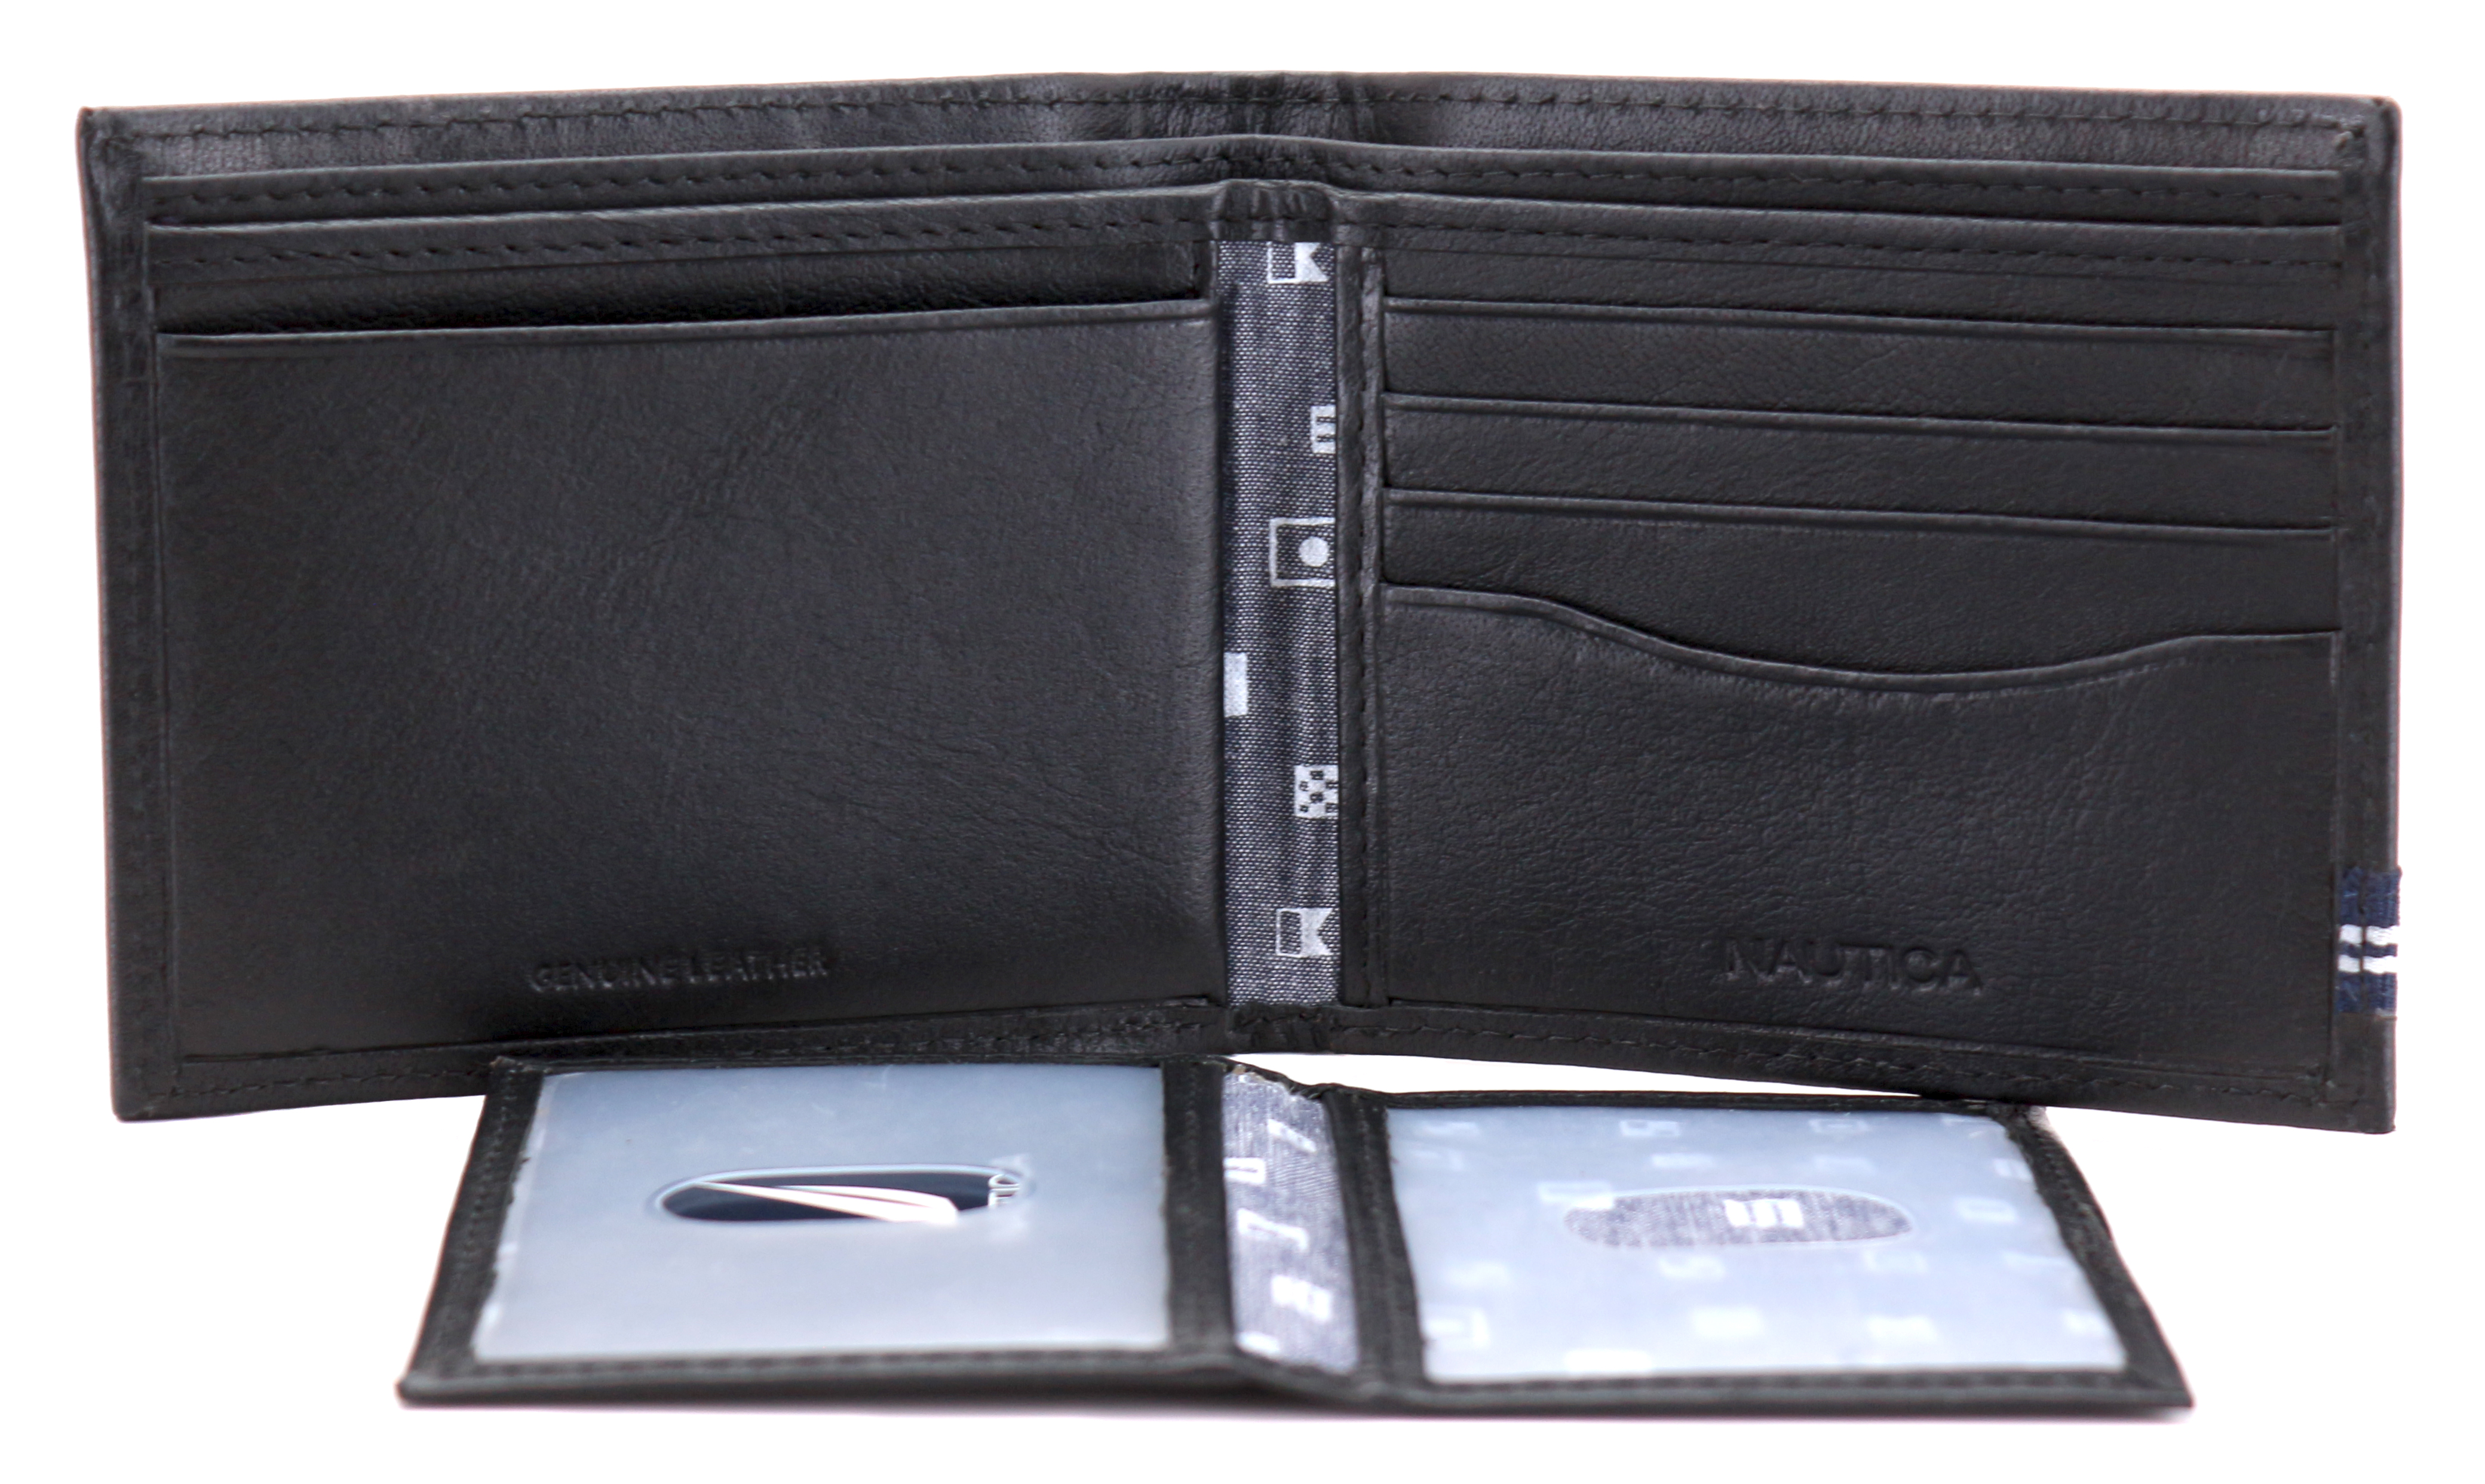 Nautica-Men-039-s-Genuine-Leather-Credit-Card-ID-Double-Billfold-Passcase-Wallet thumbnail 7